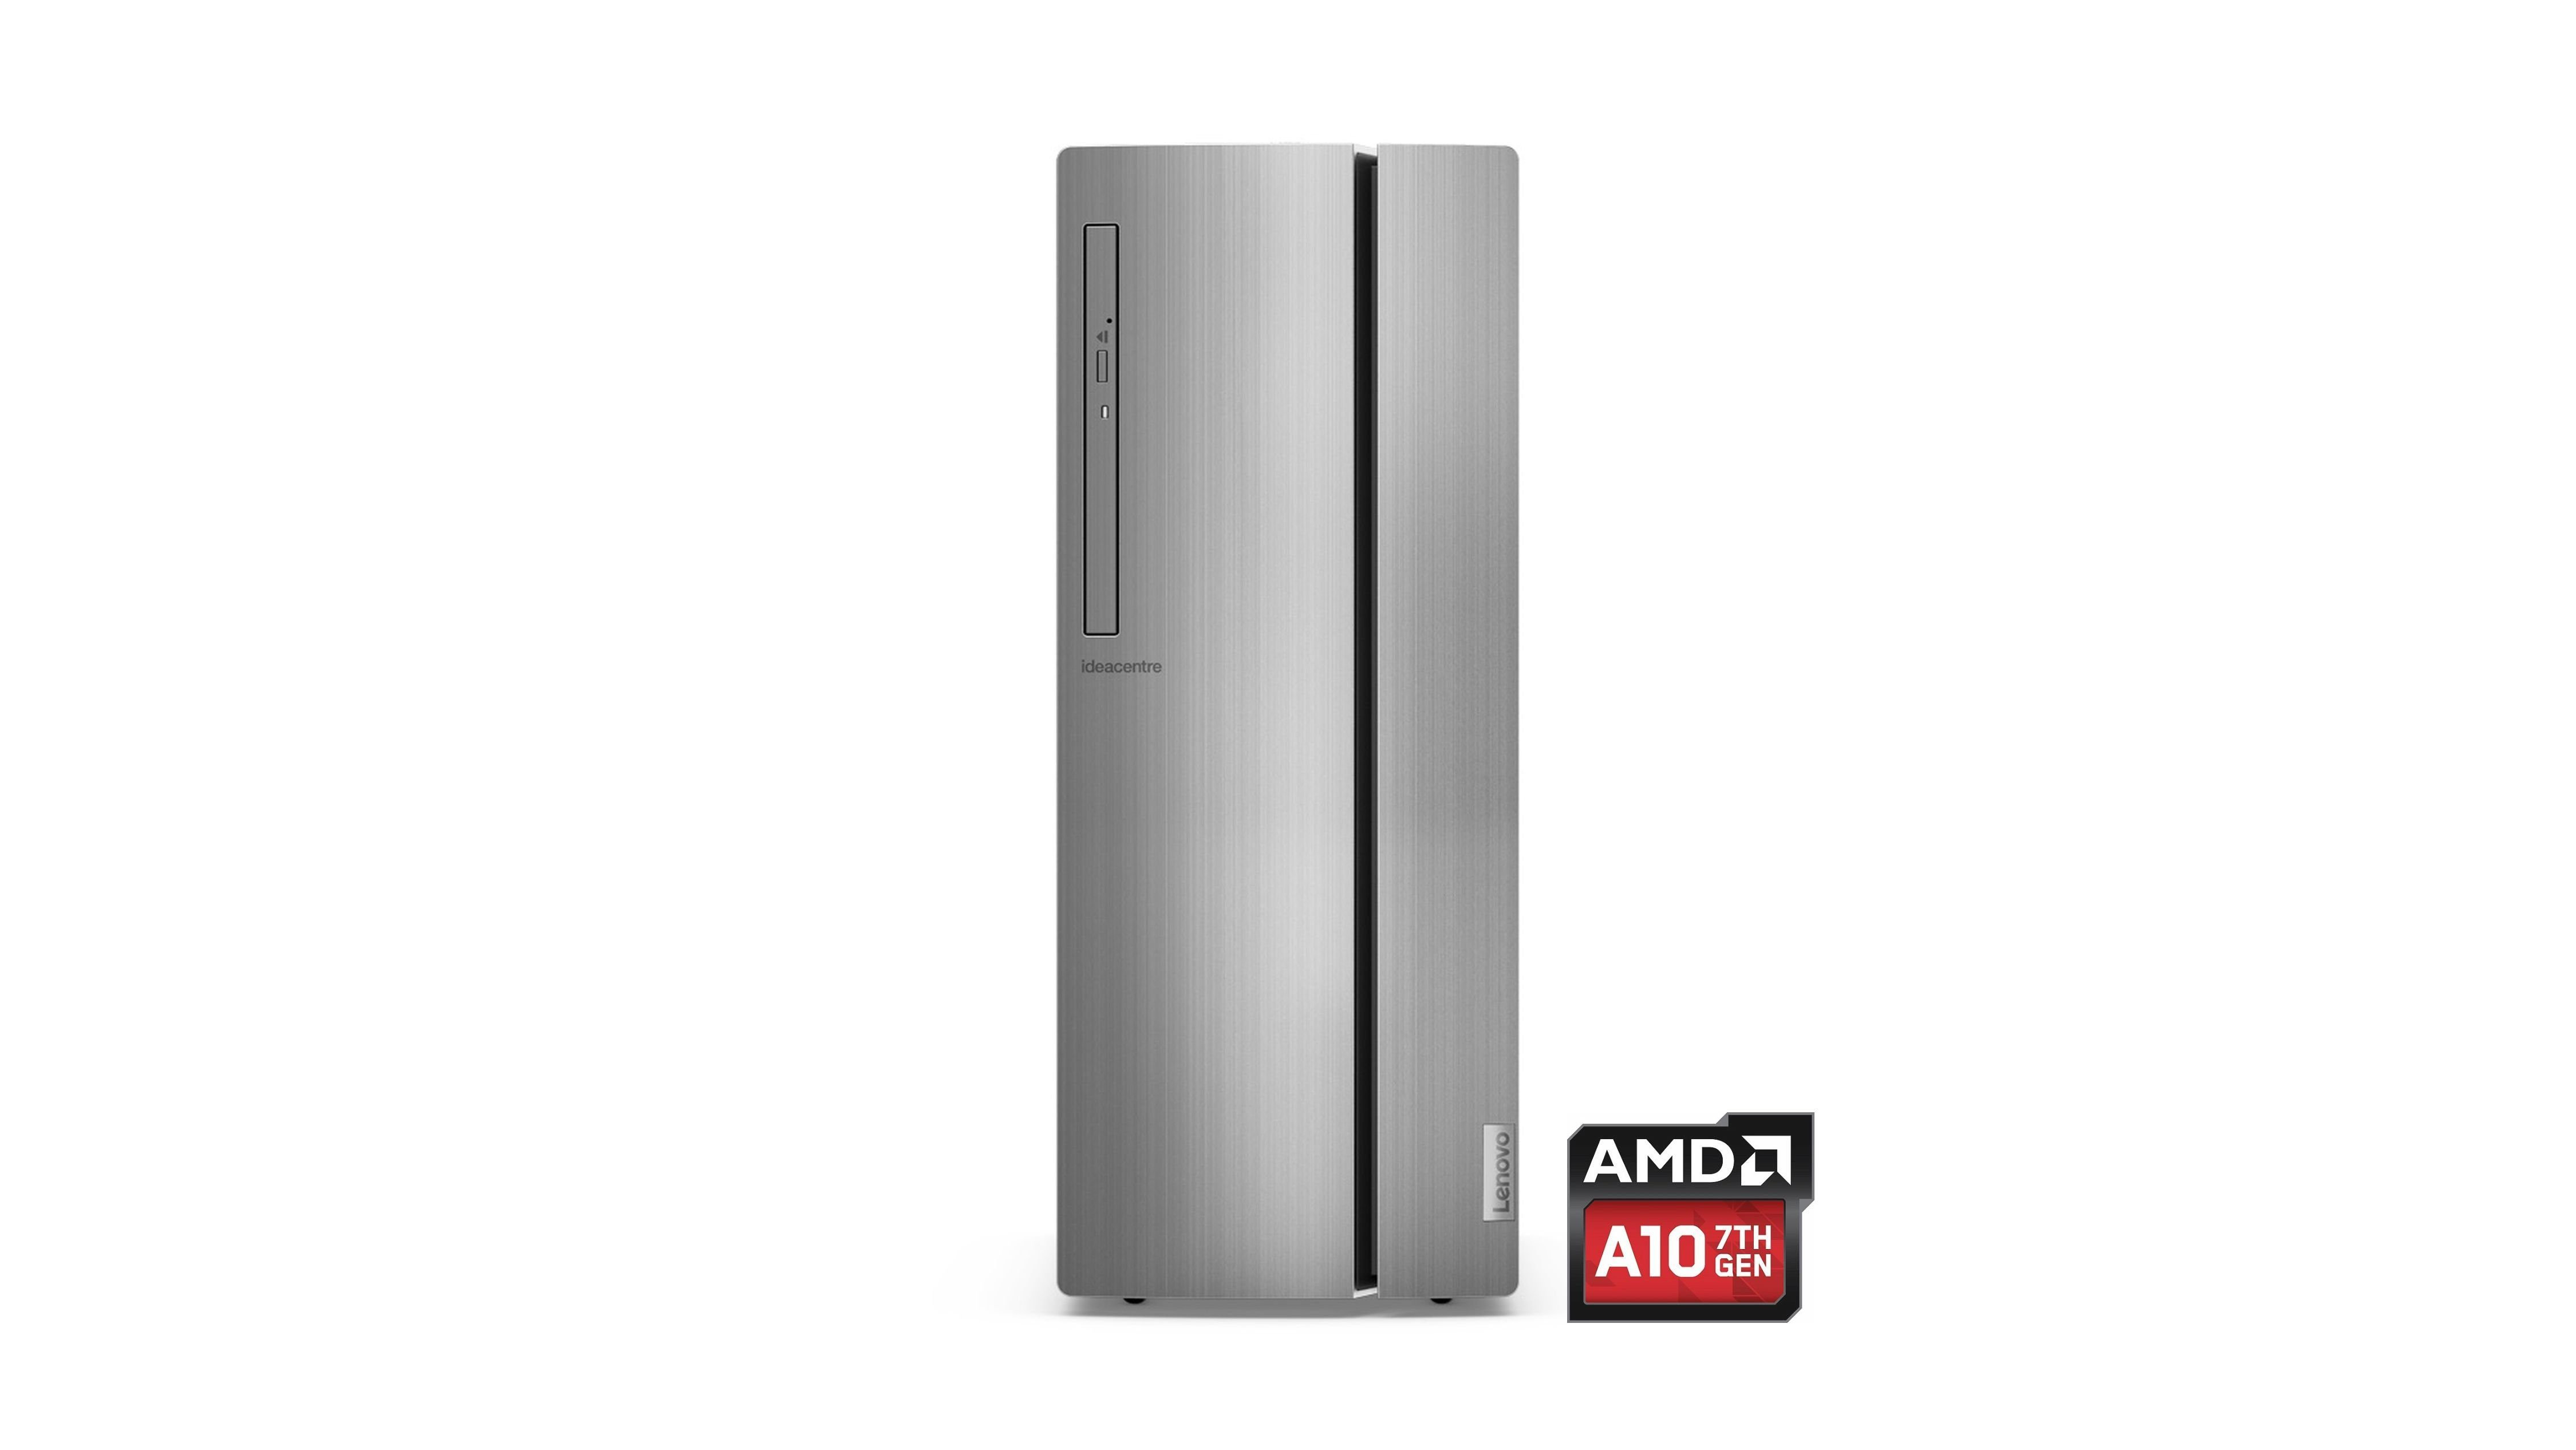 LENOVO Ideacentre 510-15ABR »AMD A10, GT 730, 128GB SSD+1 TB HDD, 8GB«